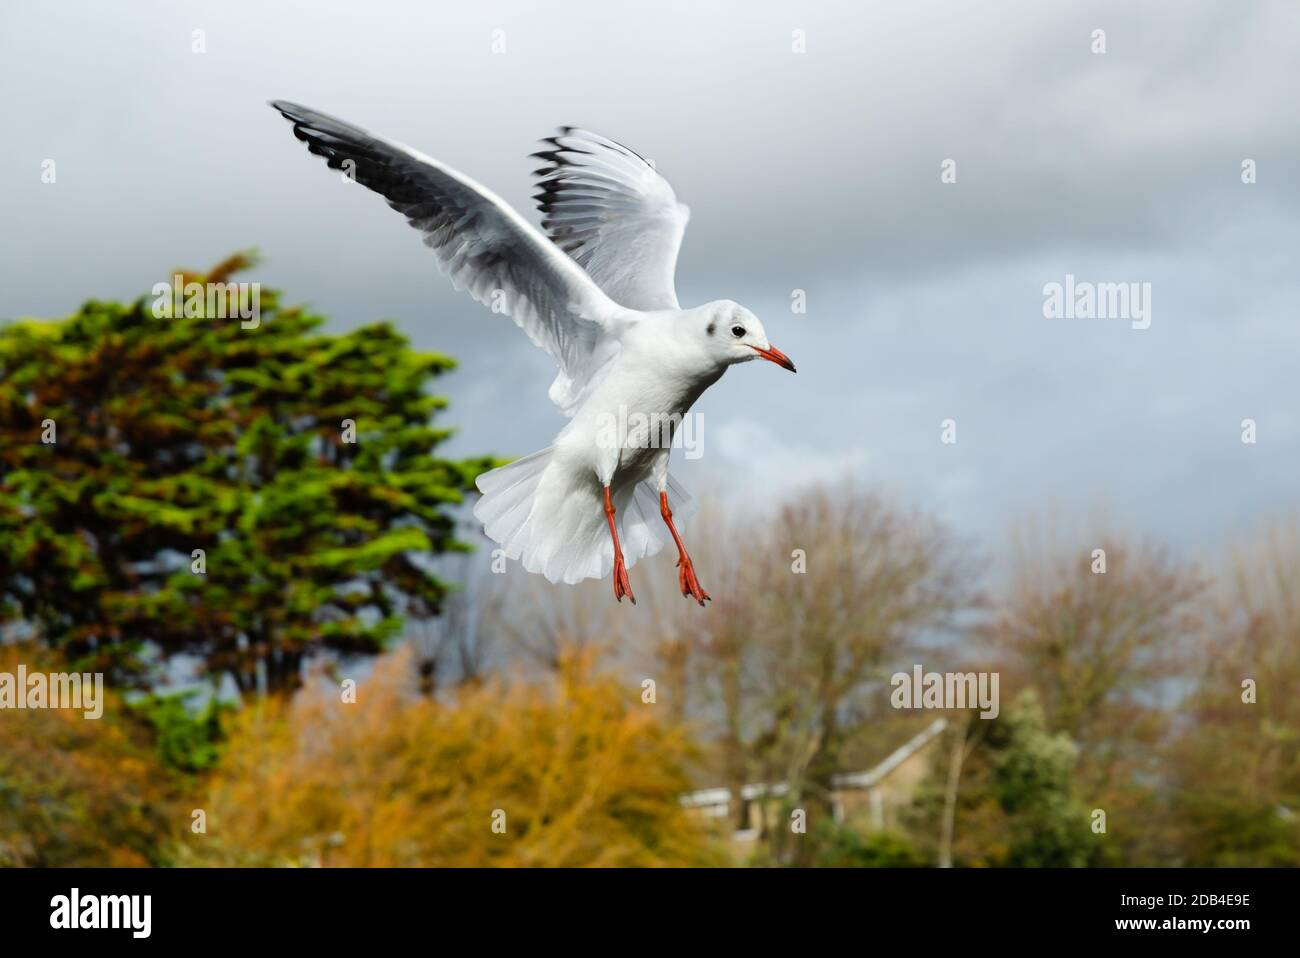 Black headed gull (Chroicocephalus ridibundus) with wings up flying in Winter in the UK. Seagull in flight. Stock Photo